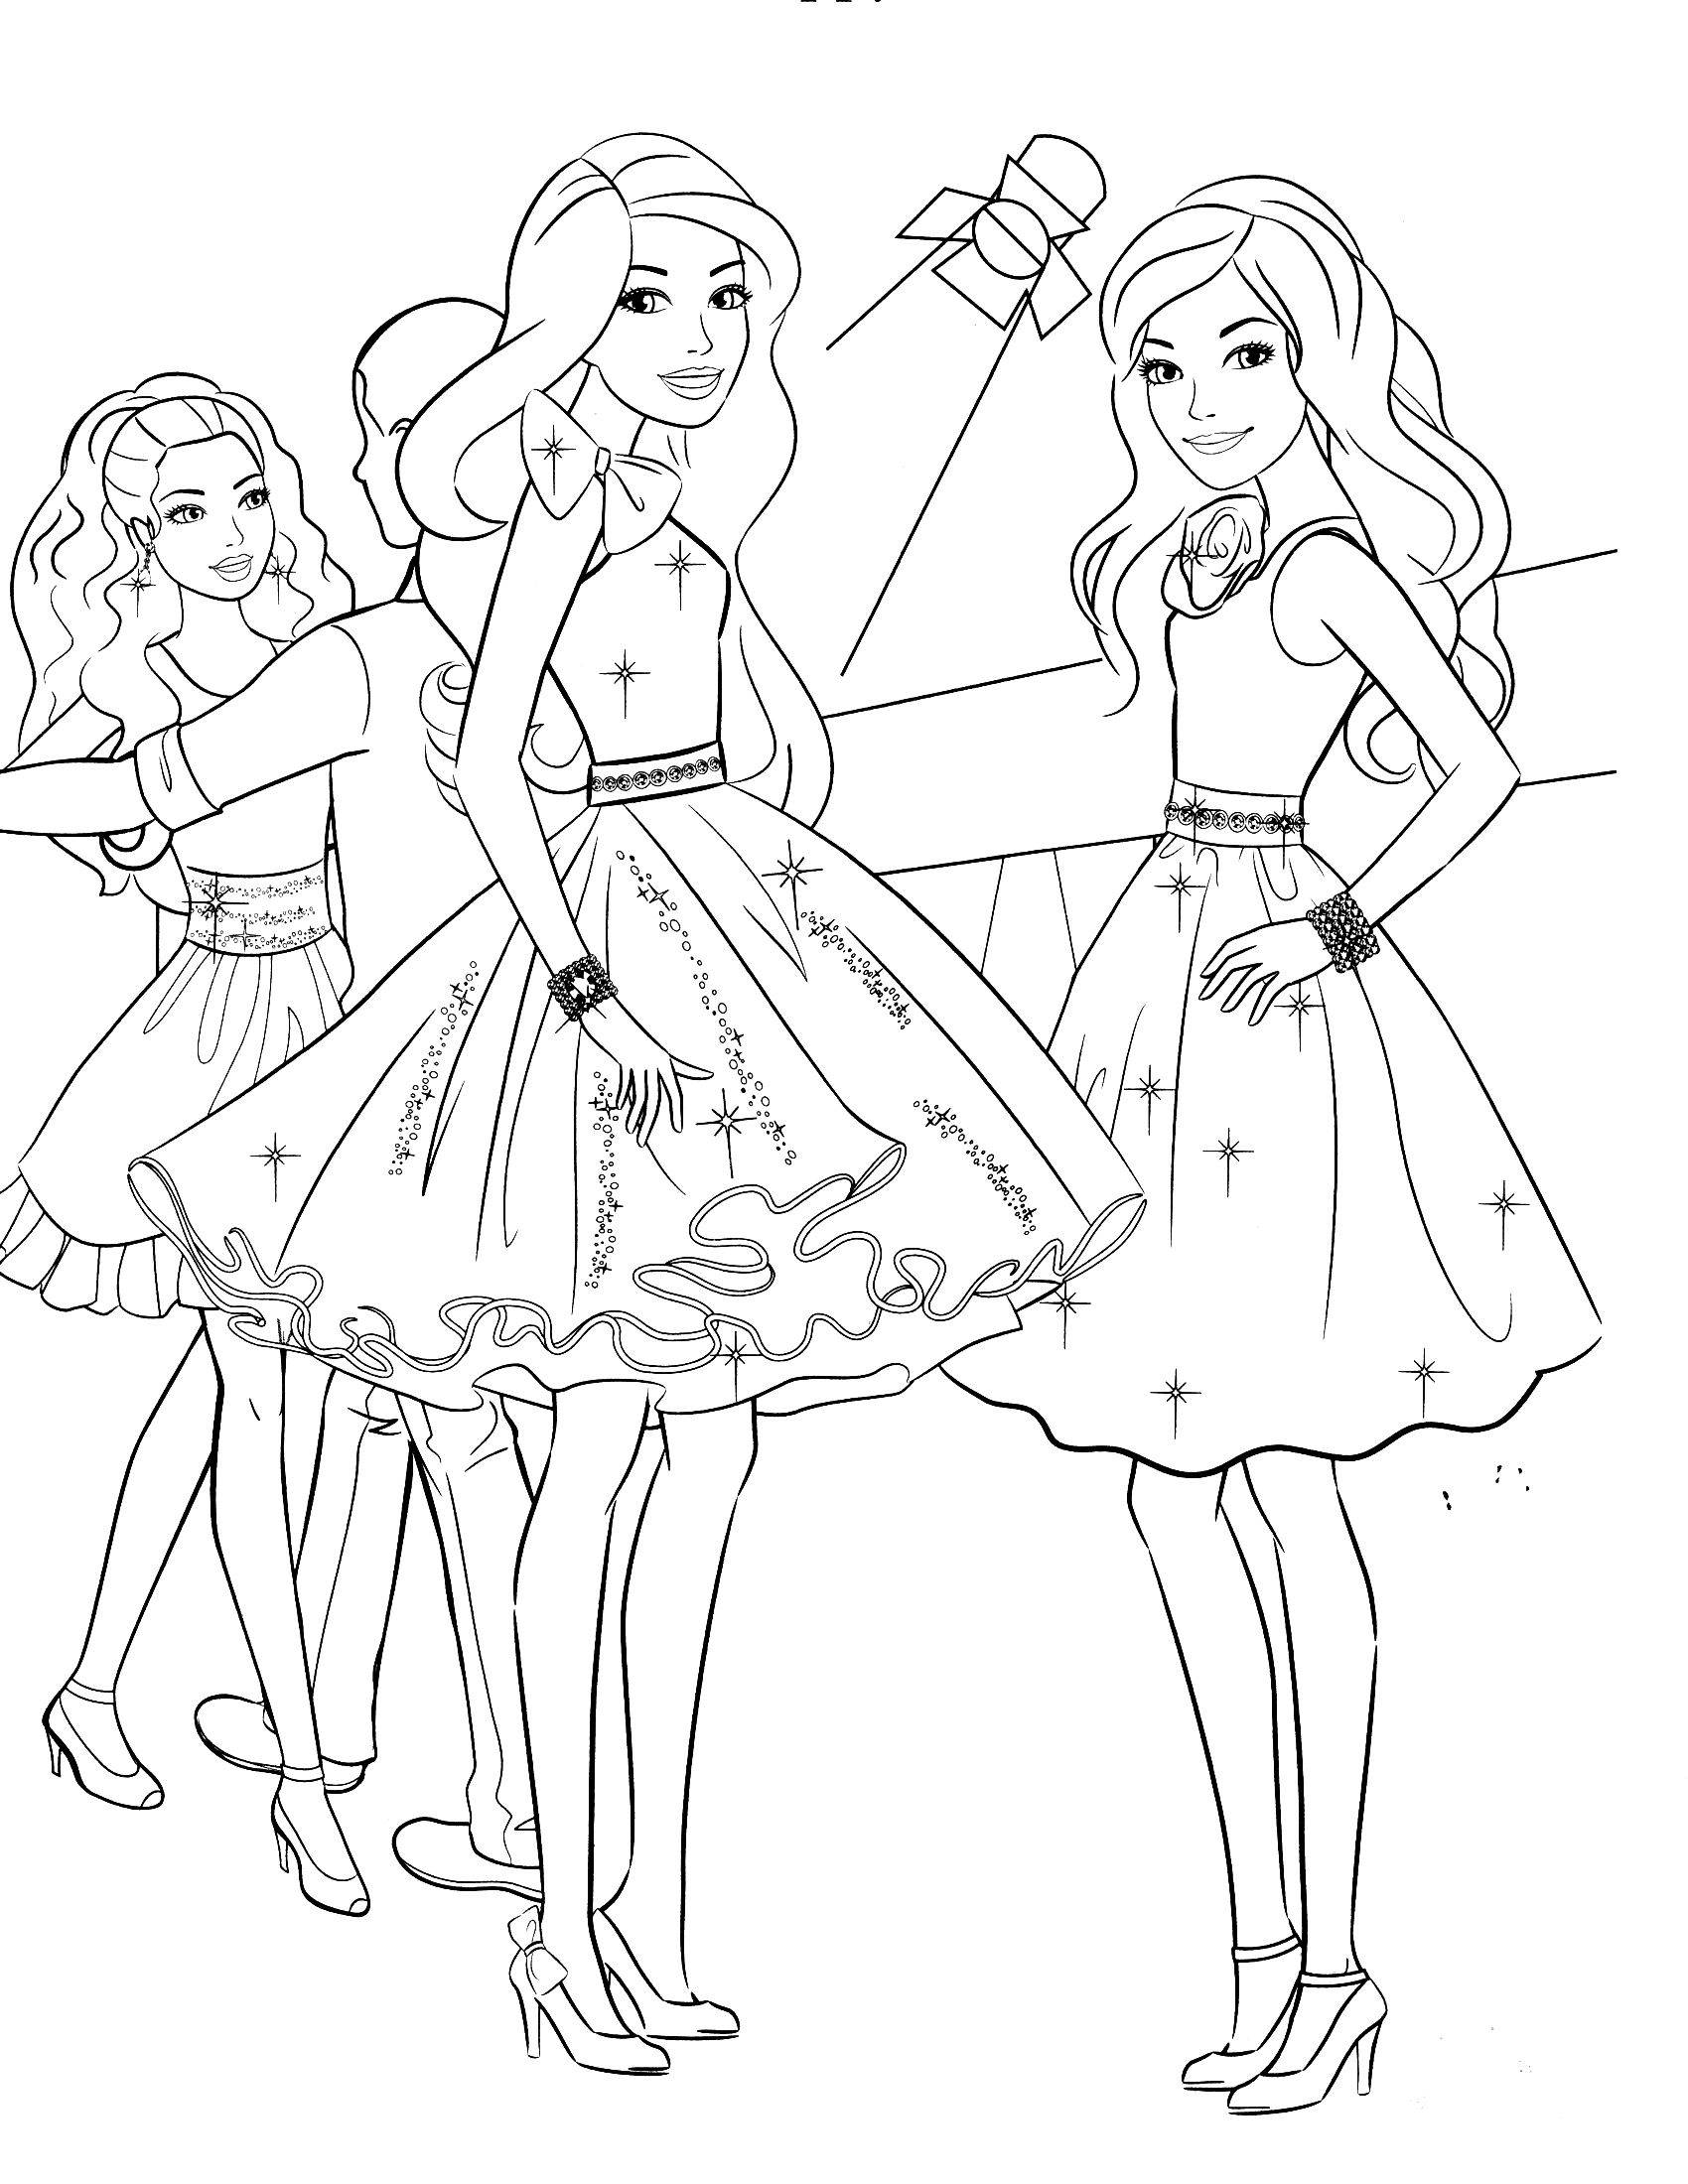 barbie coloring pages Google s¸gning Coloring